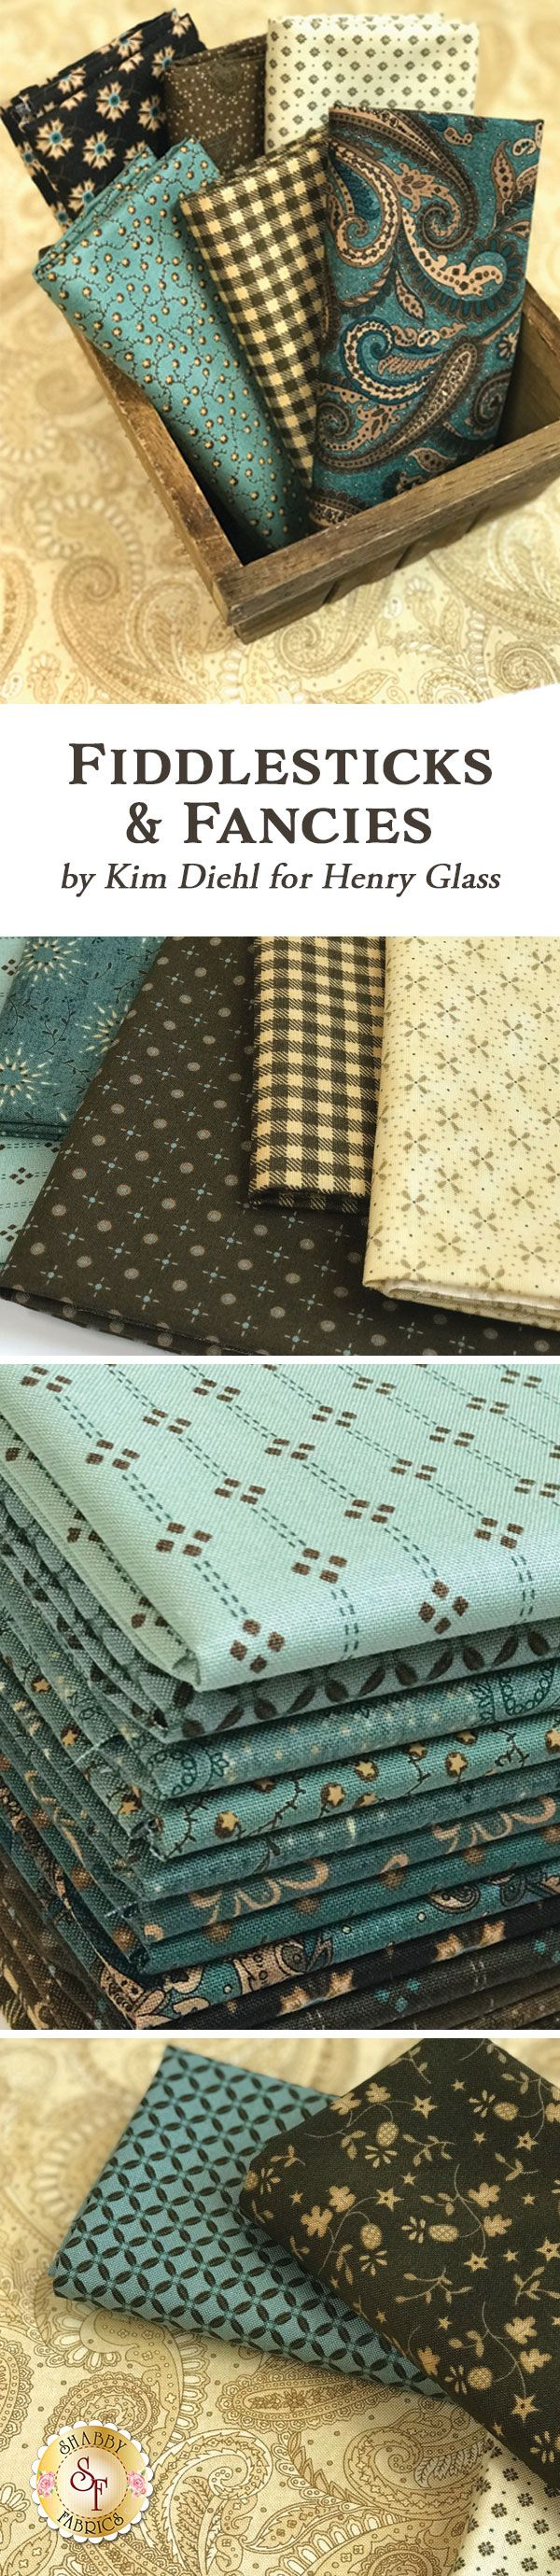 Fiddlesticks & Fancies by Kim Diehl is a lovely traditional collection filled with beautiful prints that will blend with any decor from Henry Glass Fabrics available at Shabby Fabrics.